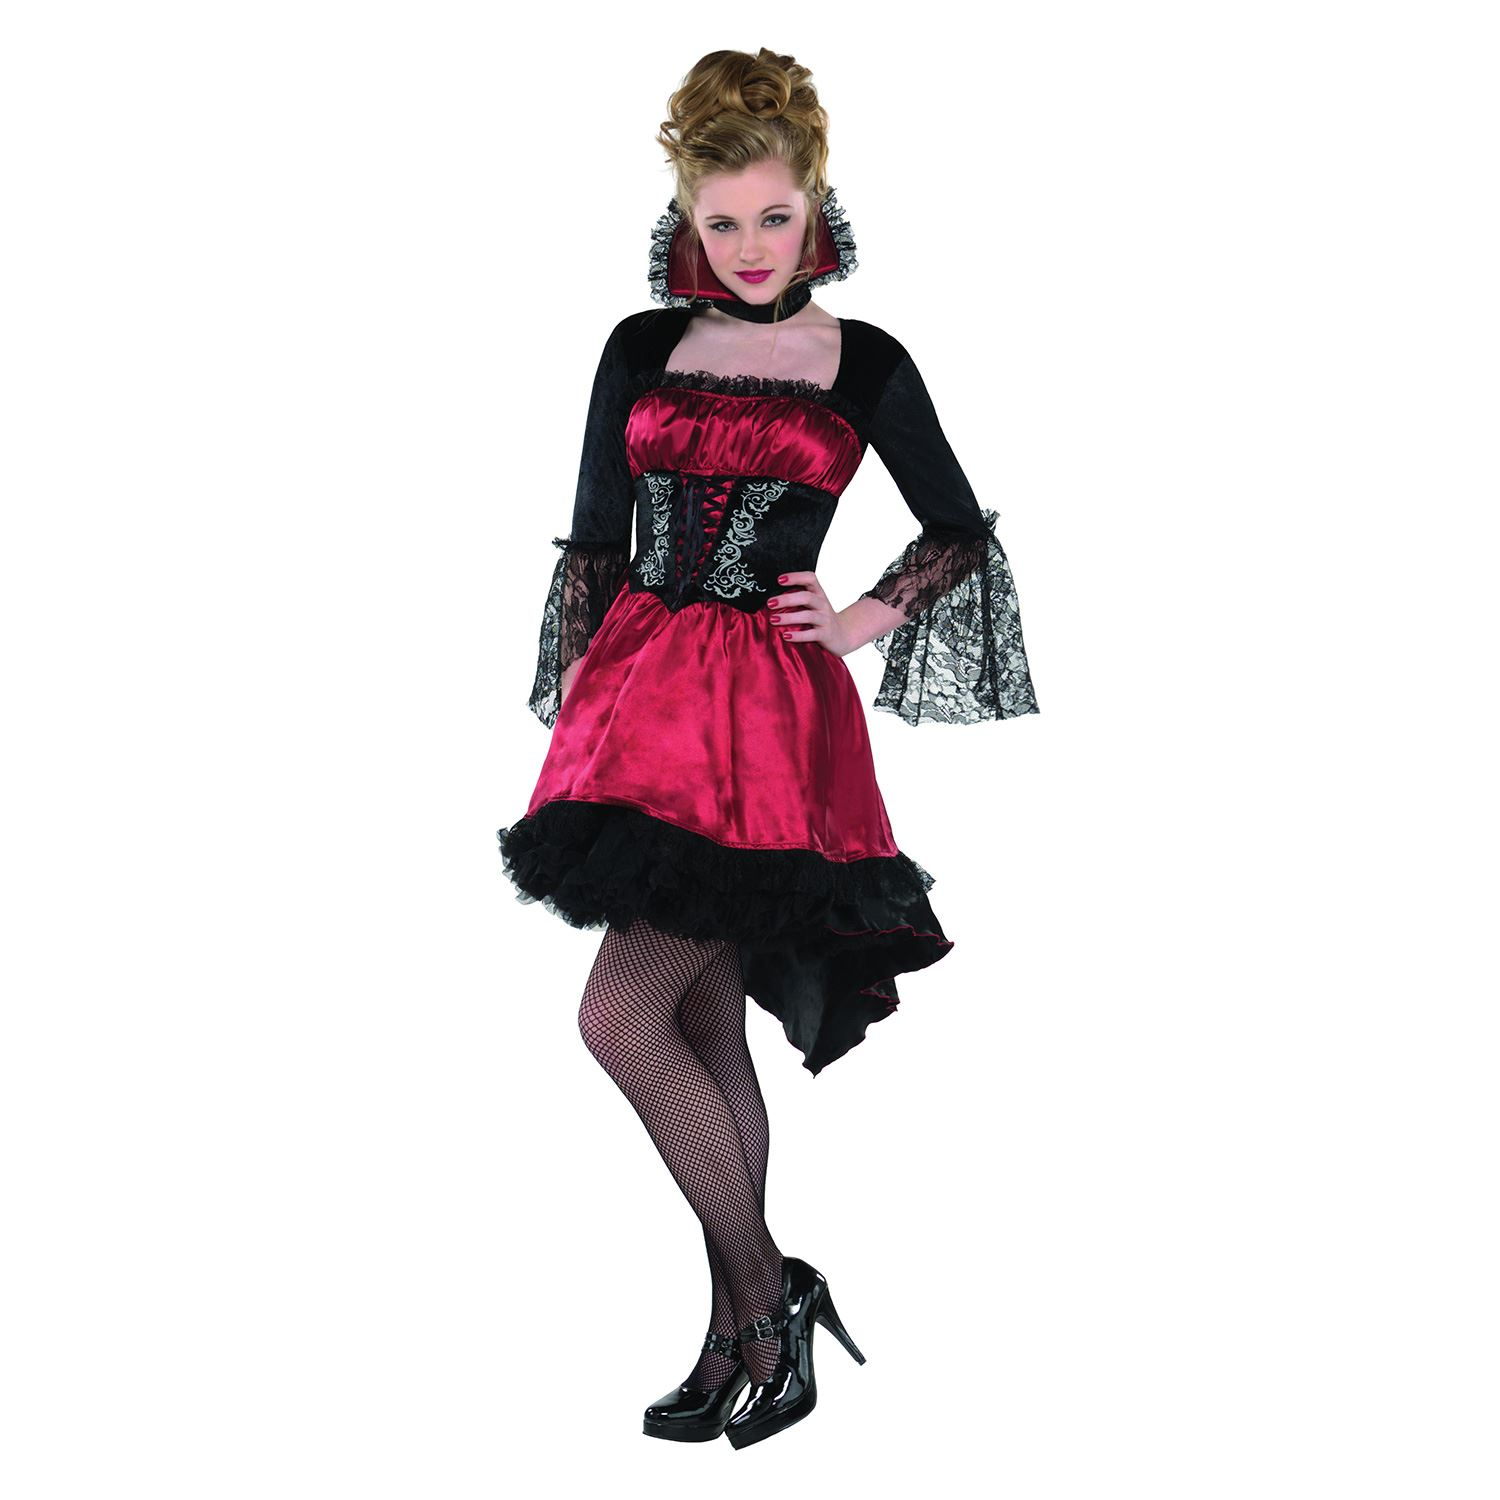 Cool Vampire VixenTurn To The Dark Side In In This Vampire Queen Womens Costume This Costume Comes With A Black  To Buy Costumes Online Since 2007 And Have The Biggest Range Of Fancy Dress In The Southern Hemisphere!